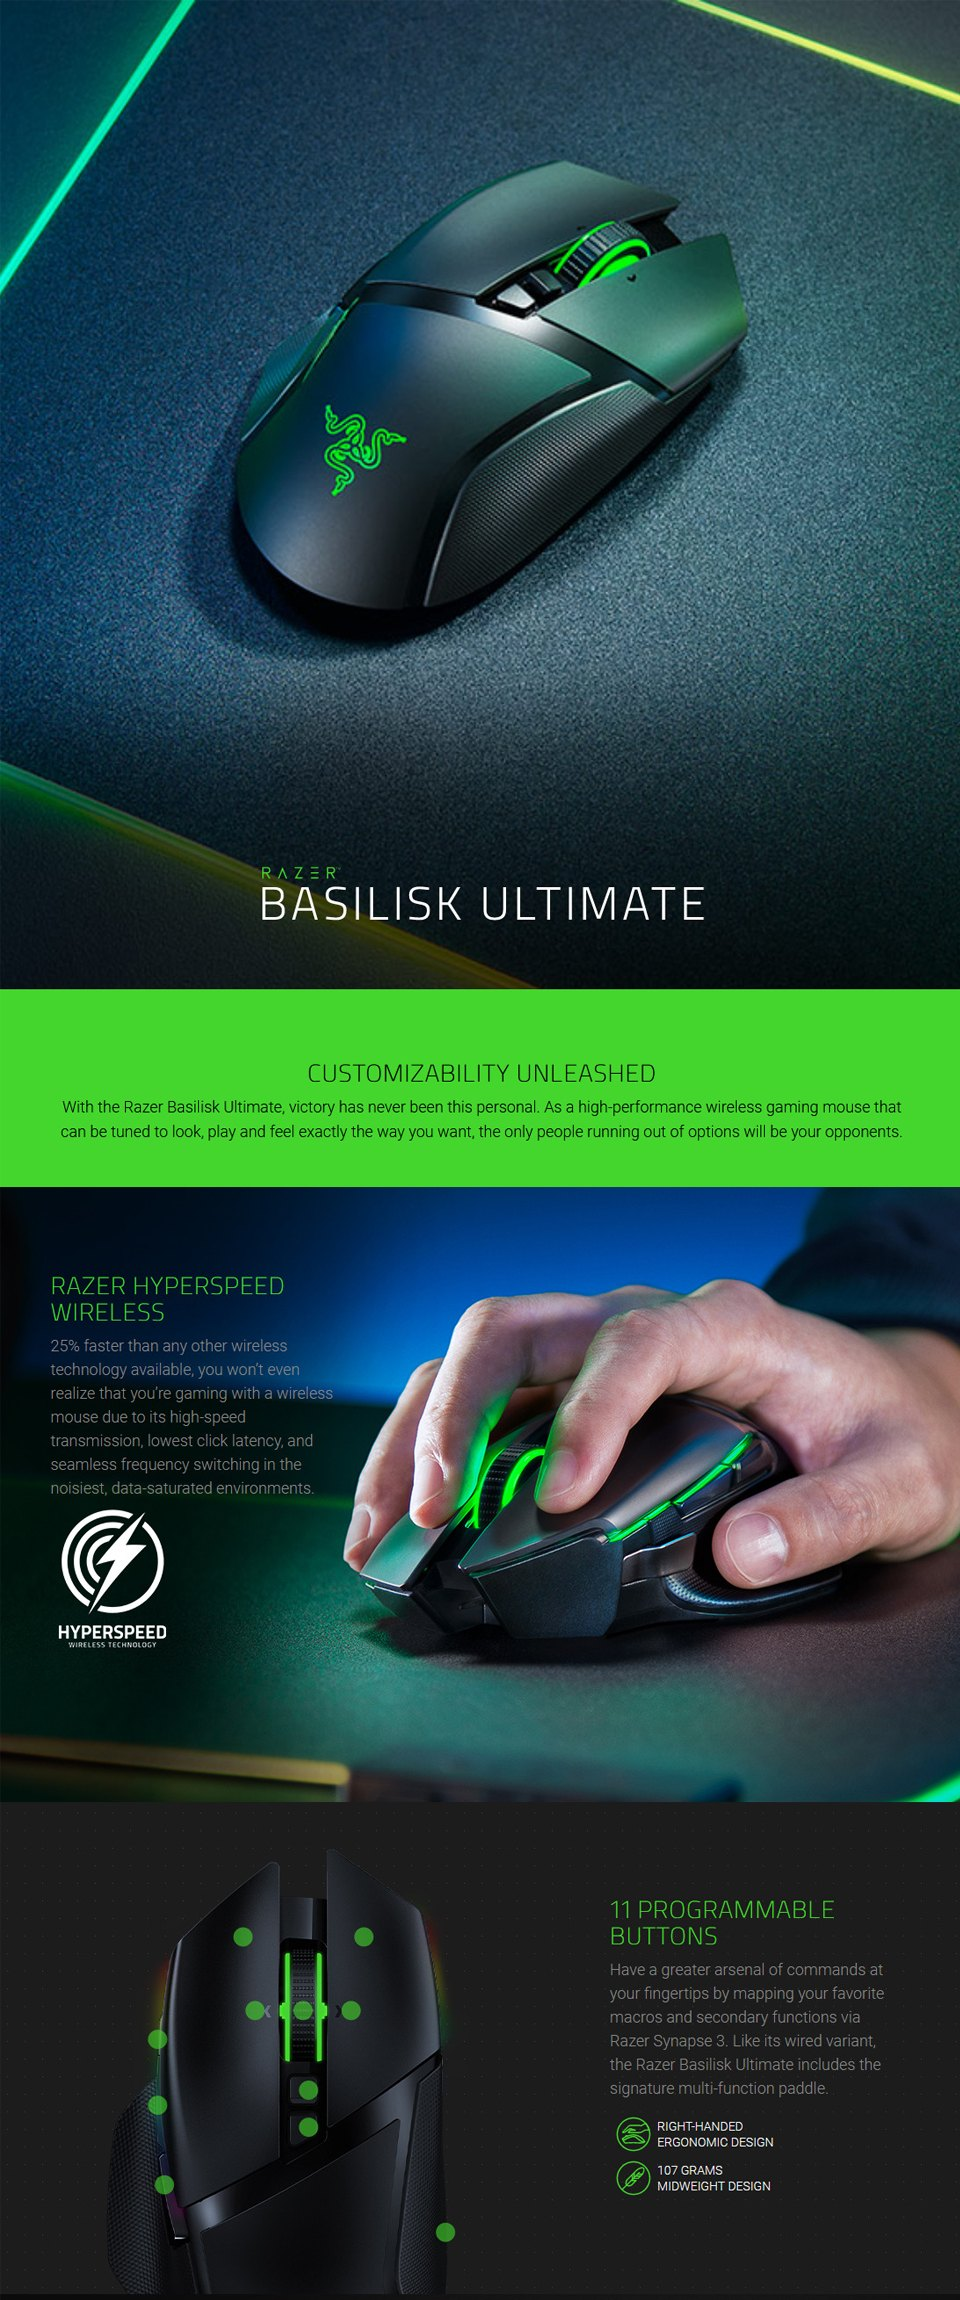 Razer Basilisk Ultimate Wireless Optical Gaming Mouse features